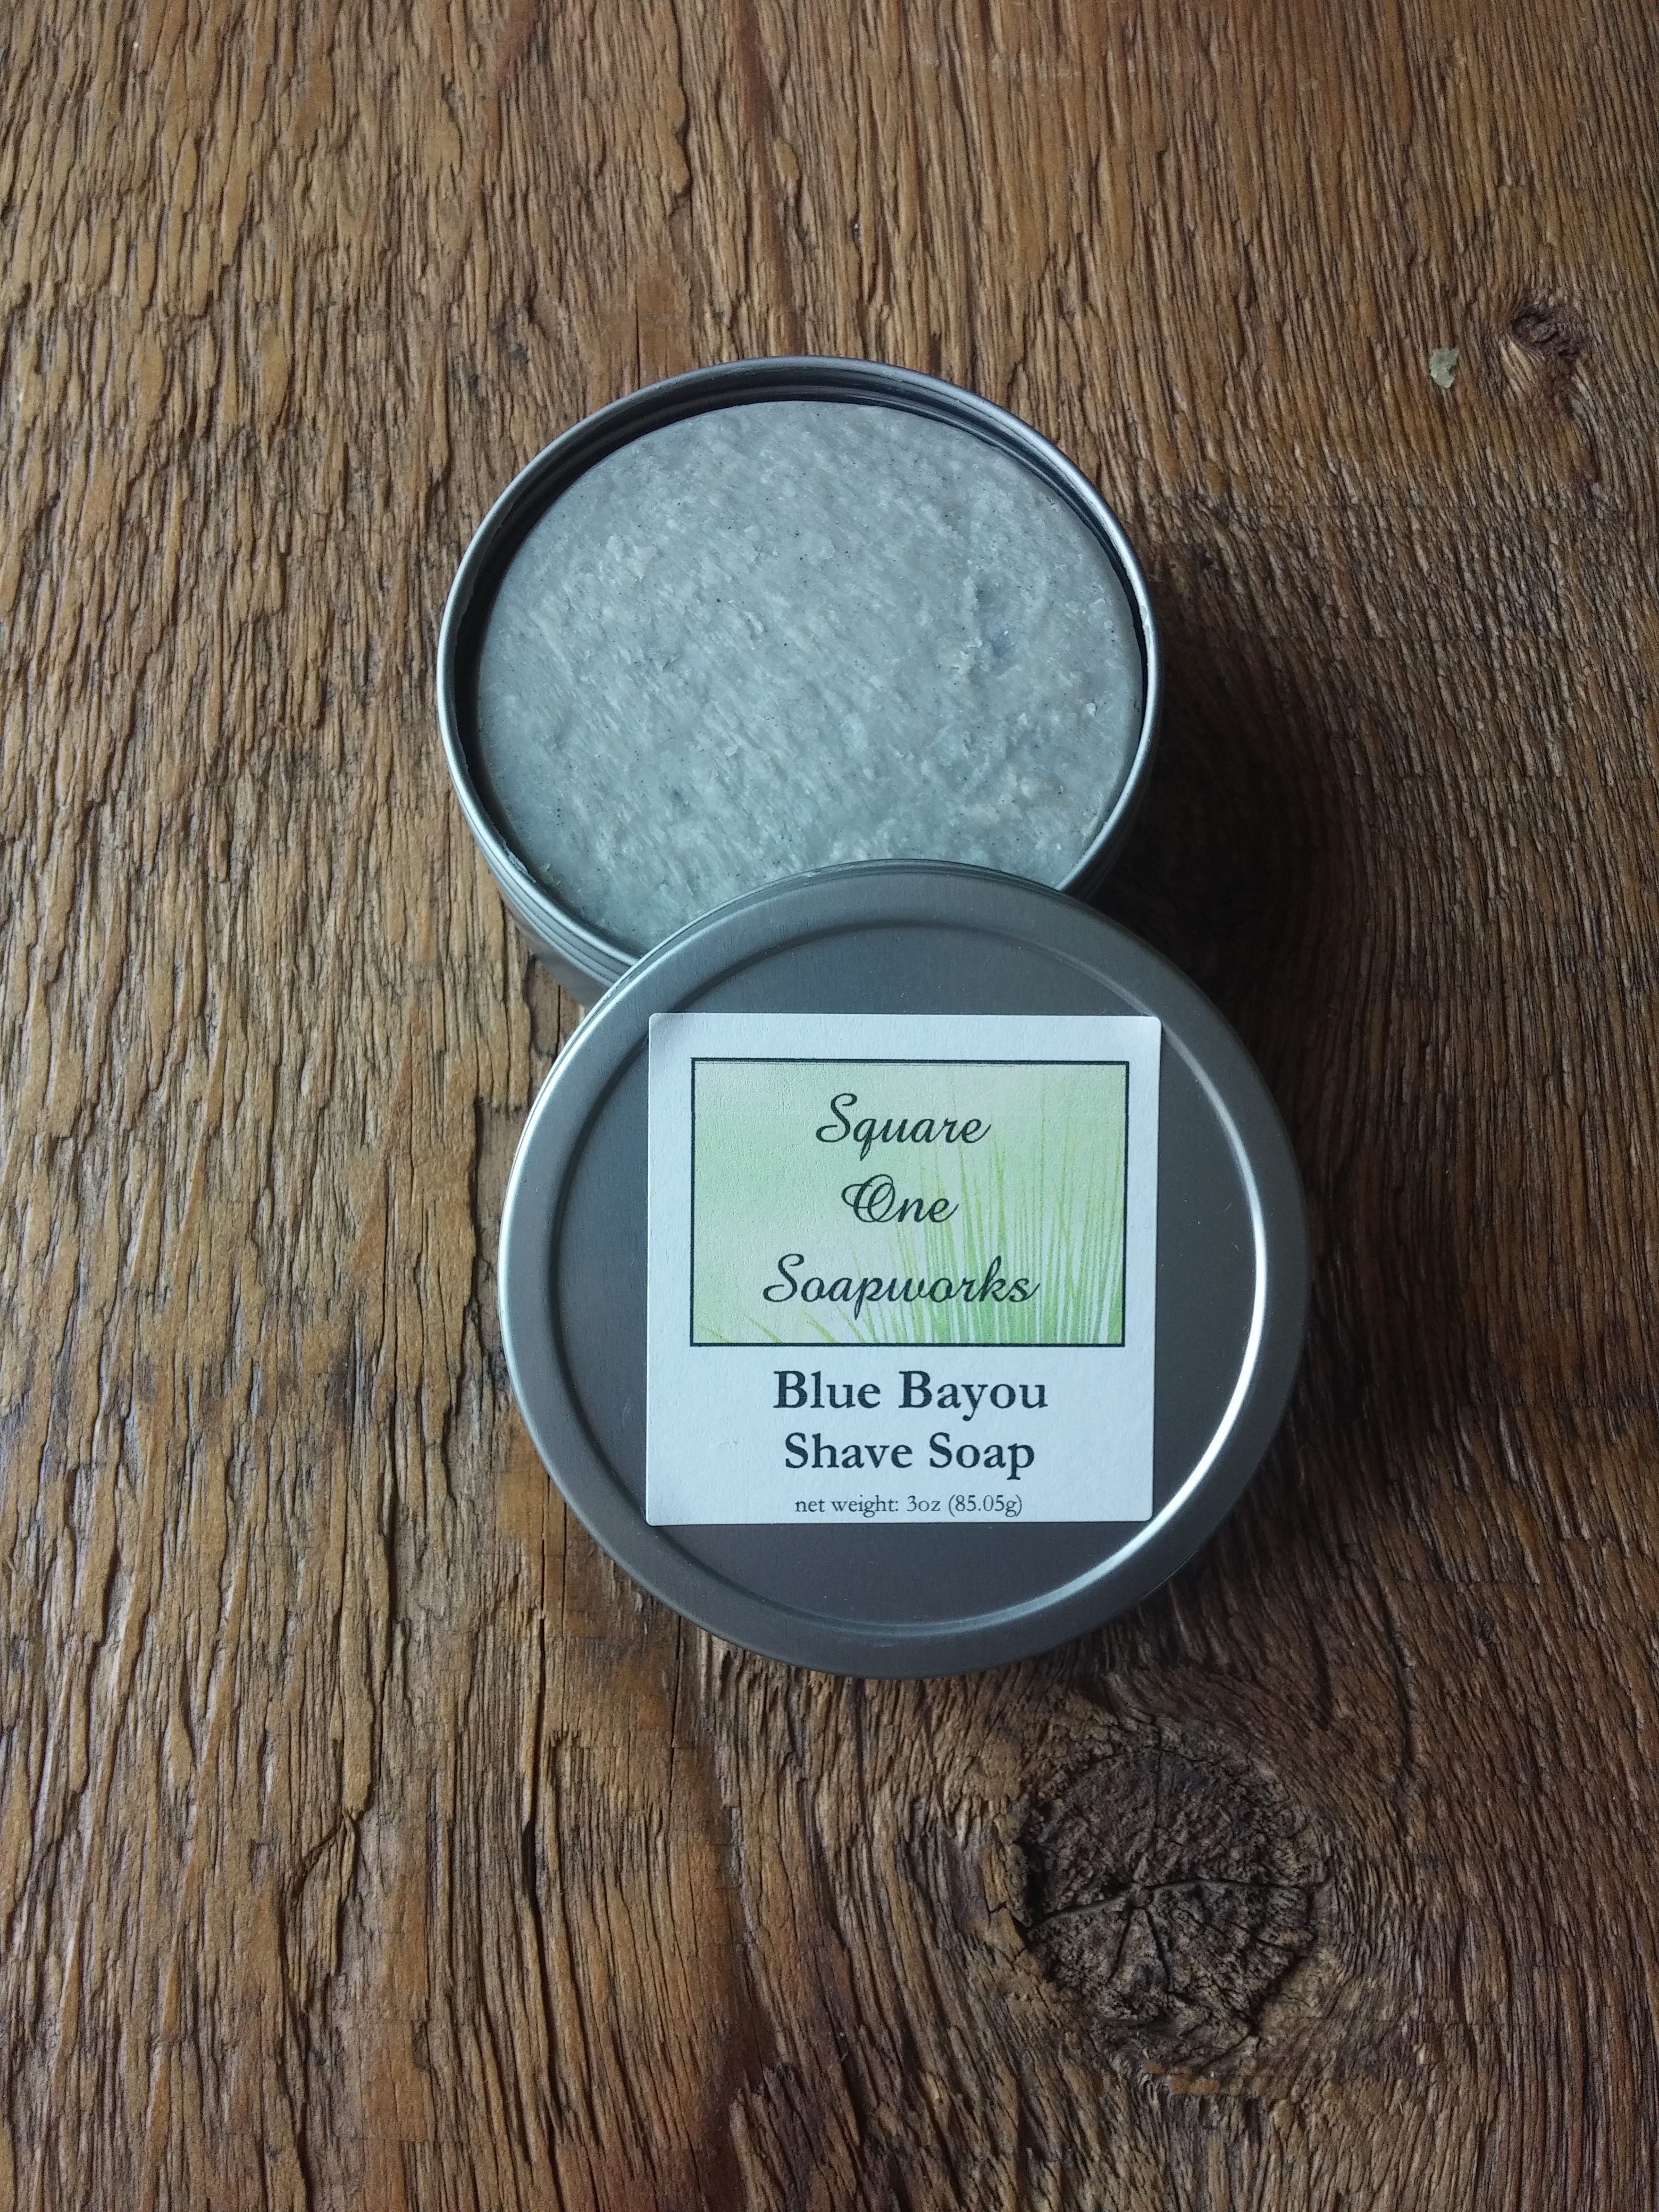 Blue Bayou Shave Soap - Square One Soapworks